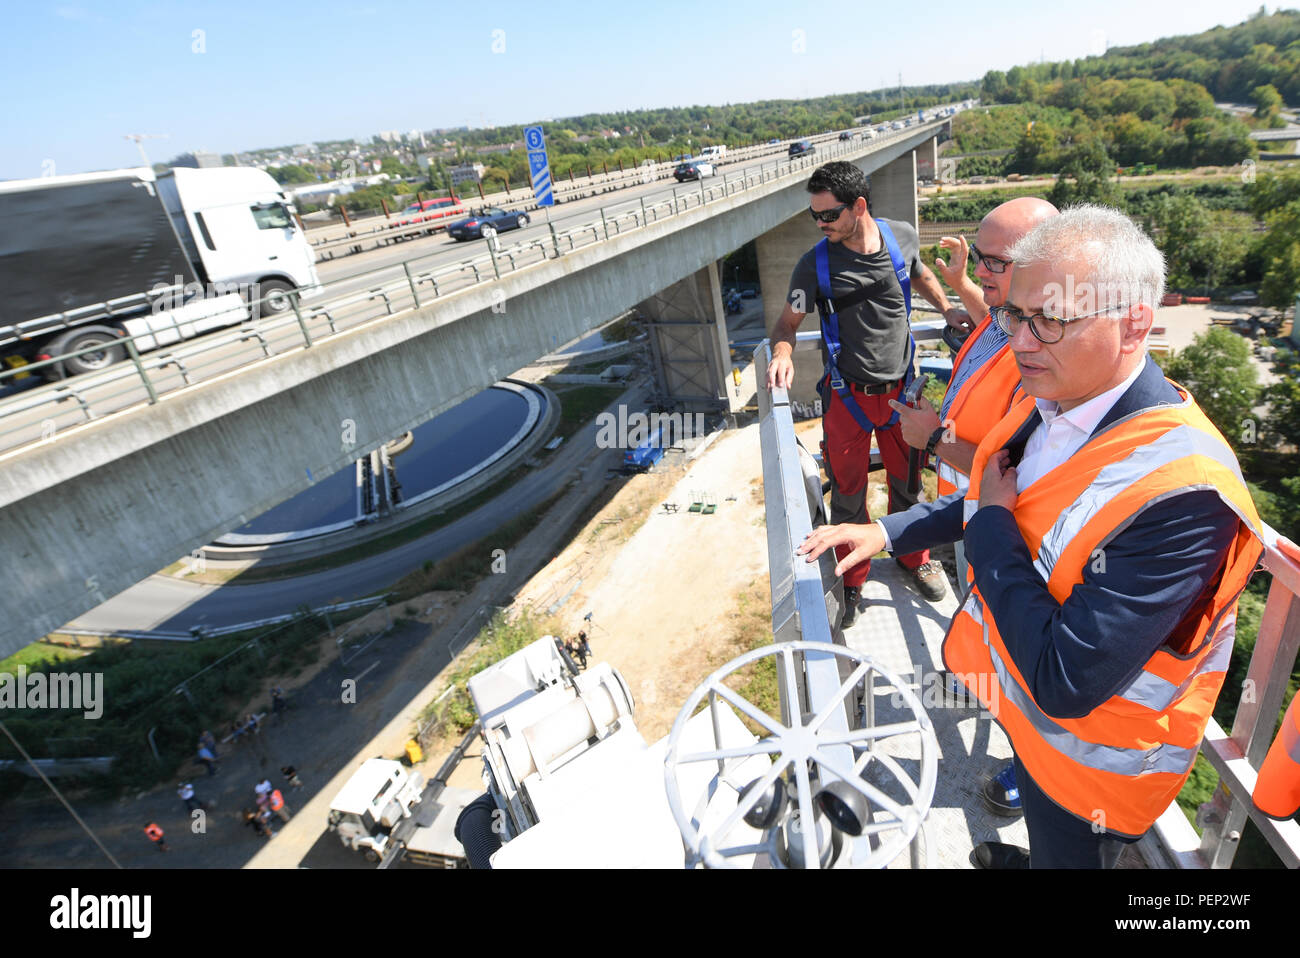 Wiesbaden, Germany. 16th Aug, 2018. Tarek Al-Wazir of the Alliance 90/The Greens, Transport Minister of the State of Hesse, together with bridge inspector Sebastian Krahle (c) from the Hessen Mobil road traffic authority and climber Goran Dadic (l) visit the Wiesbaden Salzbach Valley Bridge (A66 motorway) during a press conference. Hessen Mobil uses the bridge as an example to show how the condition of a bridge is checked. Credit: Arne Dedert/dpa/Alamy Live News - Stock Image